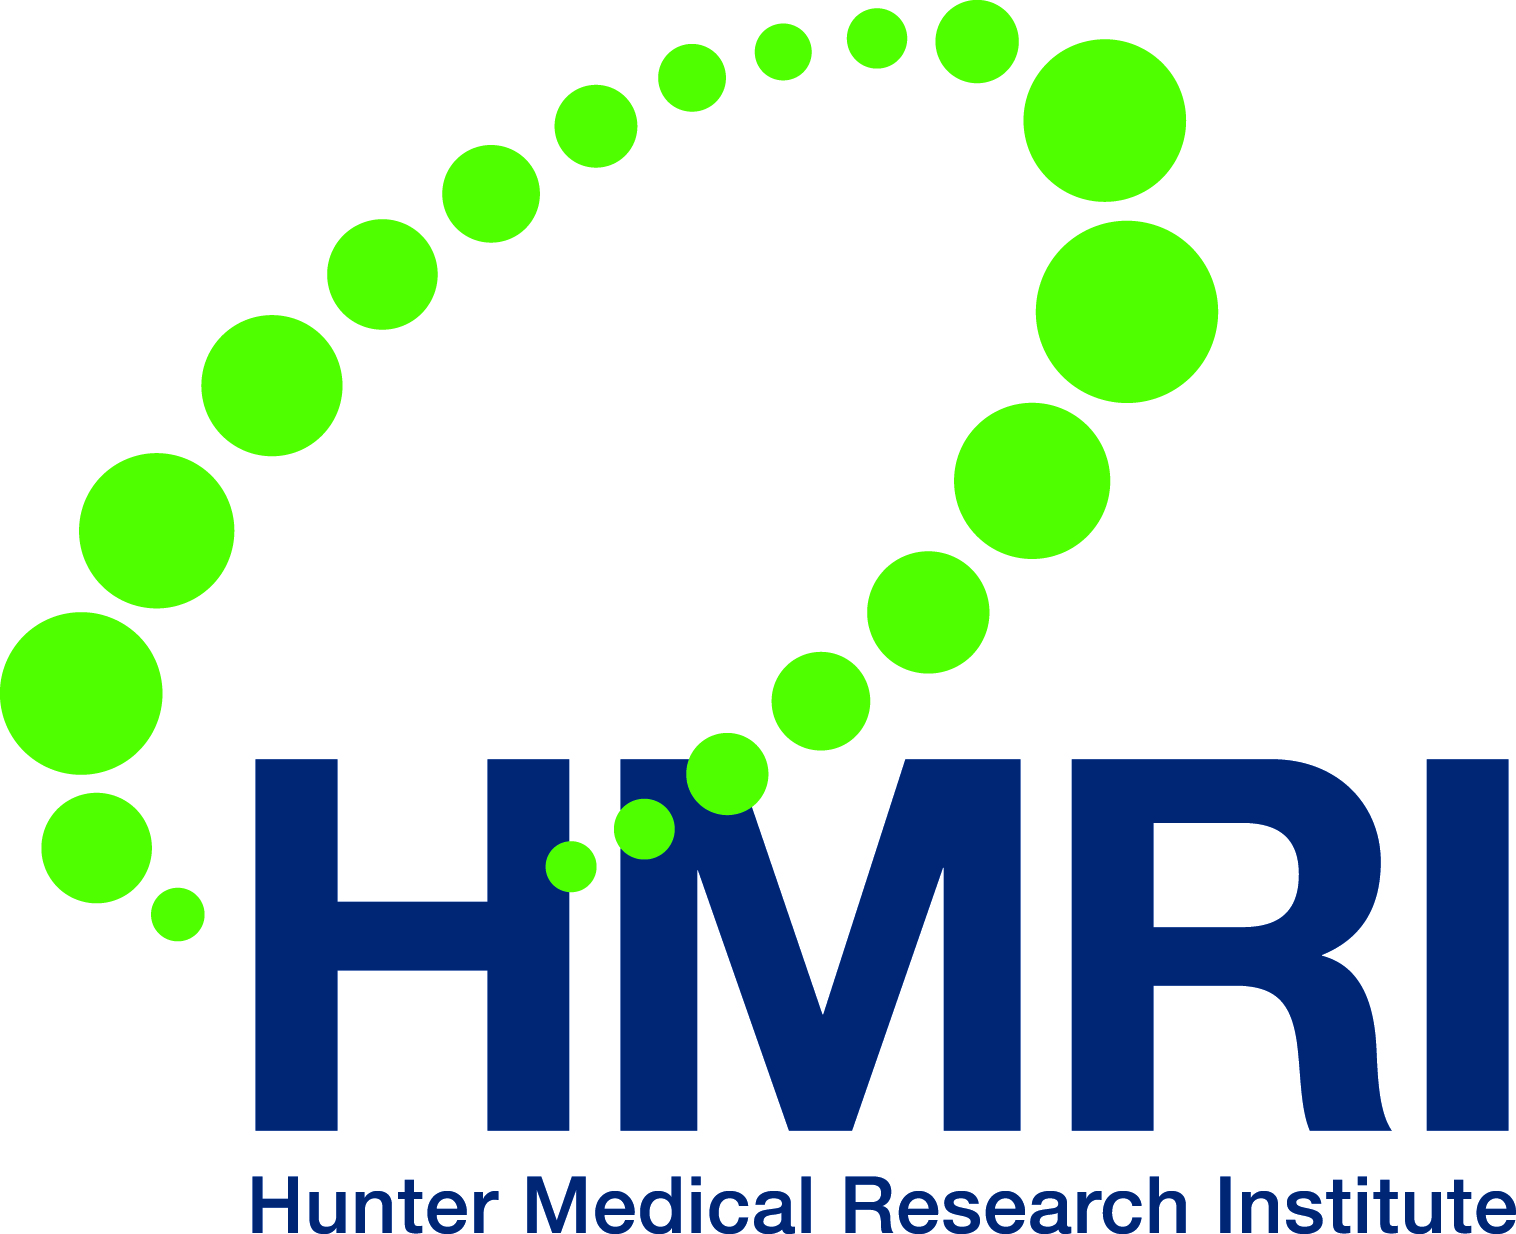 Hunter Medical Research Institute - HMRI logo